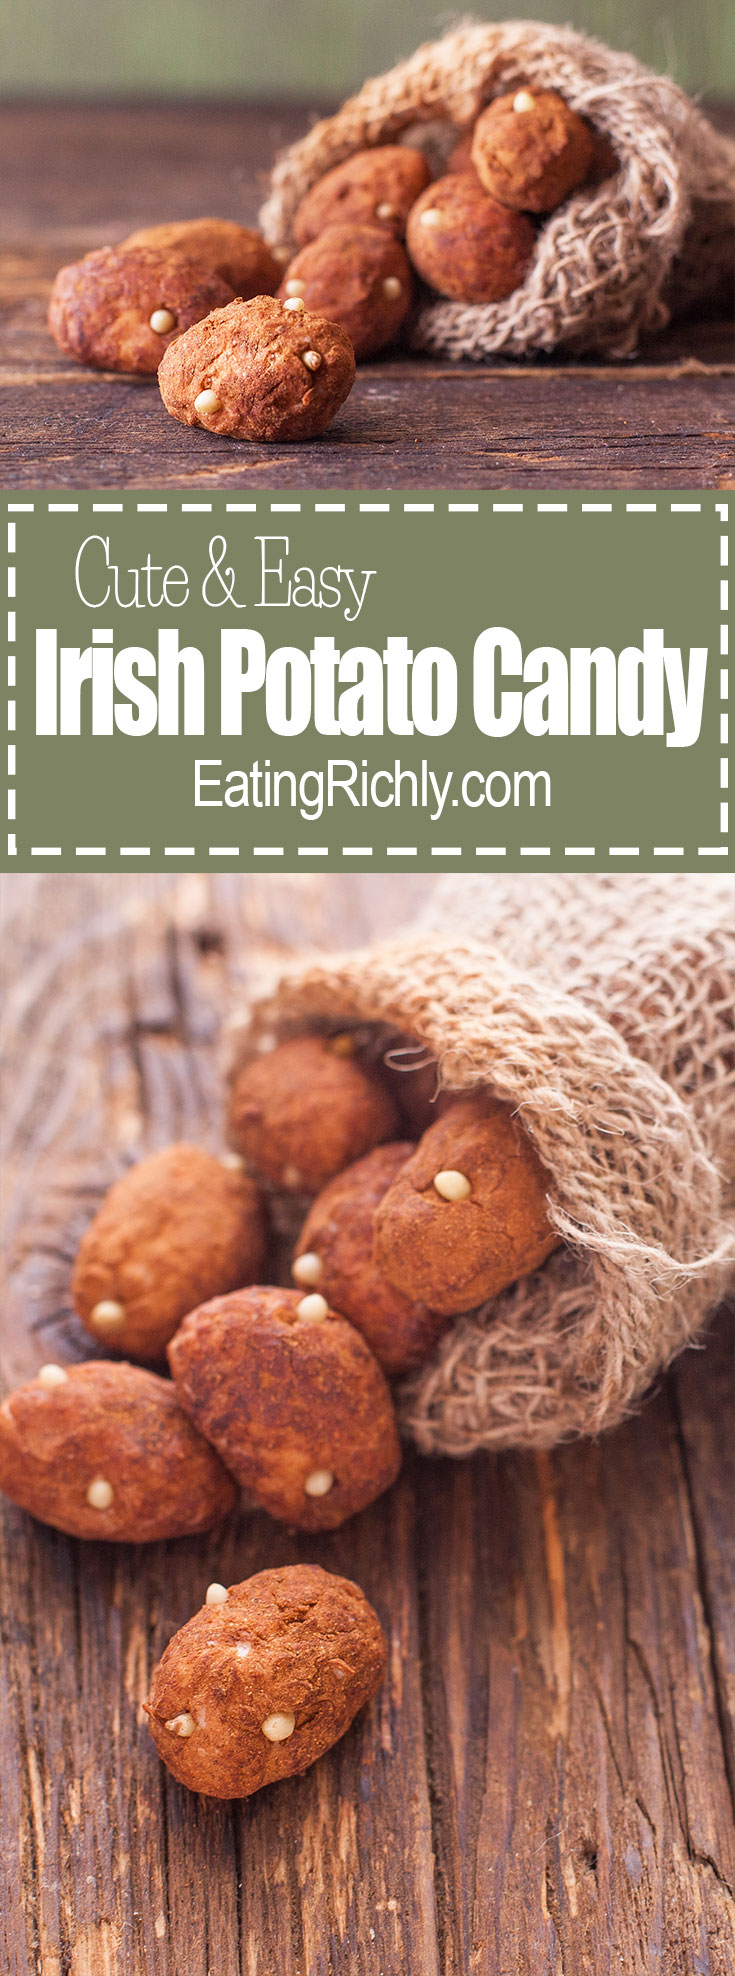 These tasty Irish treats are an easy no bake dessert for St. Patrick's Day, and look just like cute little Irish potatoes! From EatingRichly.com